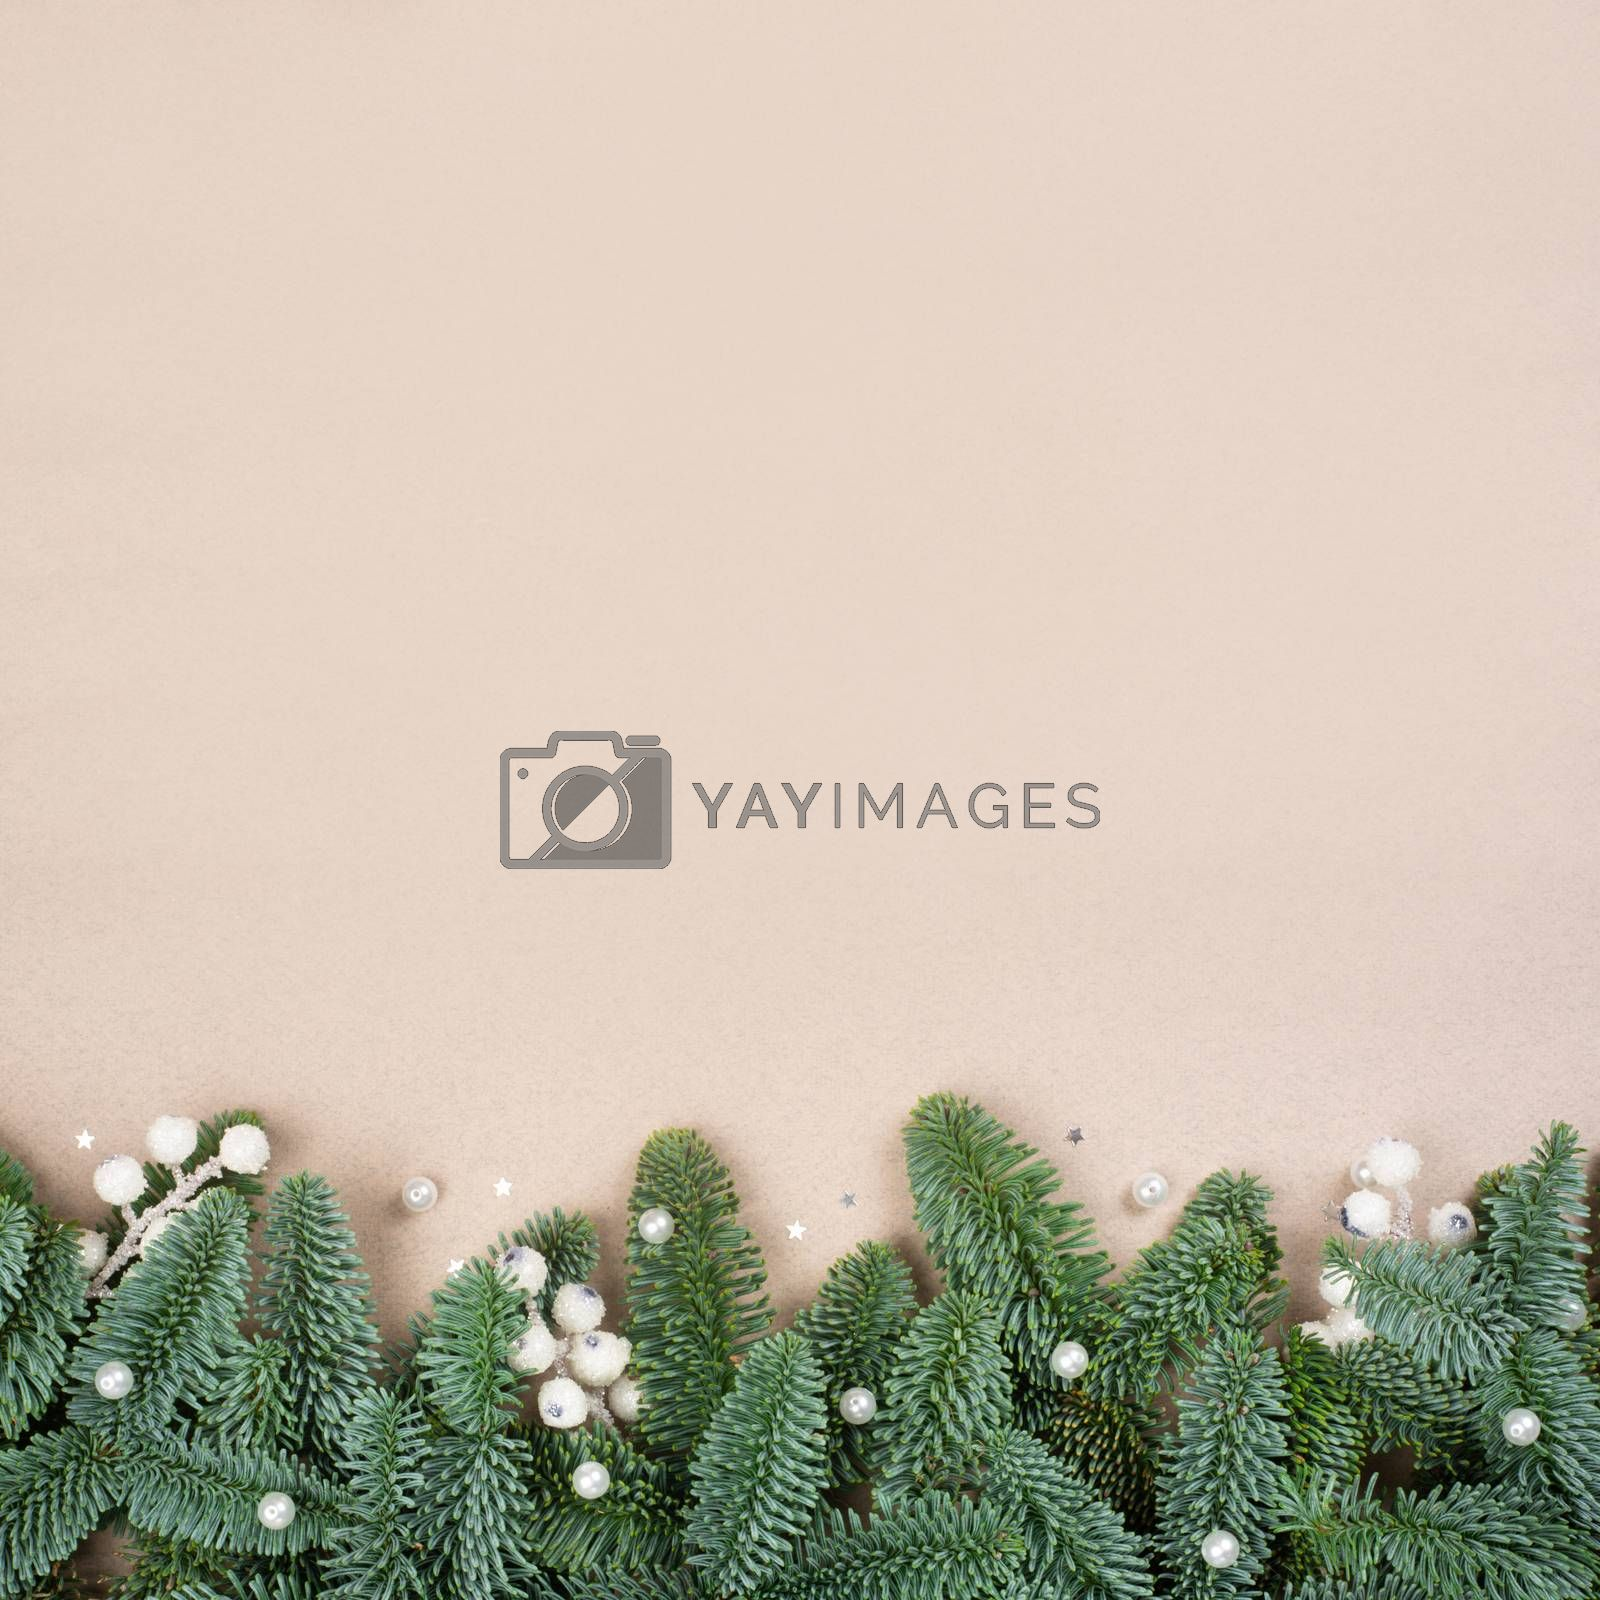 Traditional green christmas tree noble fir and white decor baubes border frame on craft paper background copy space for text